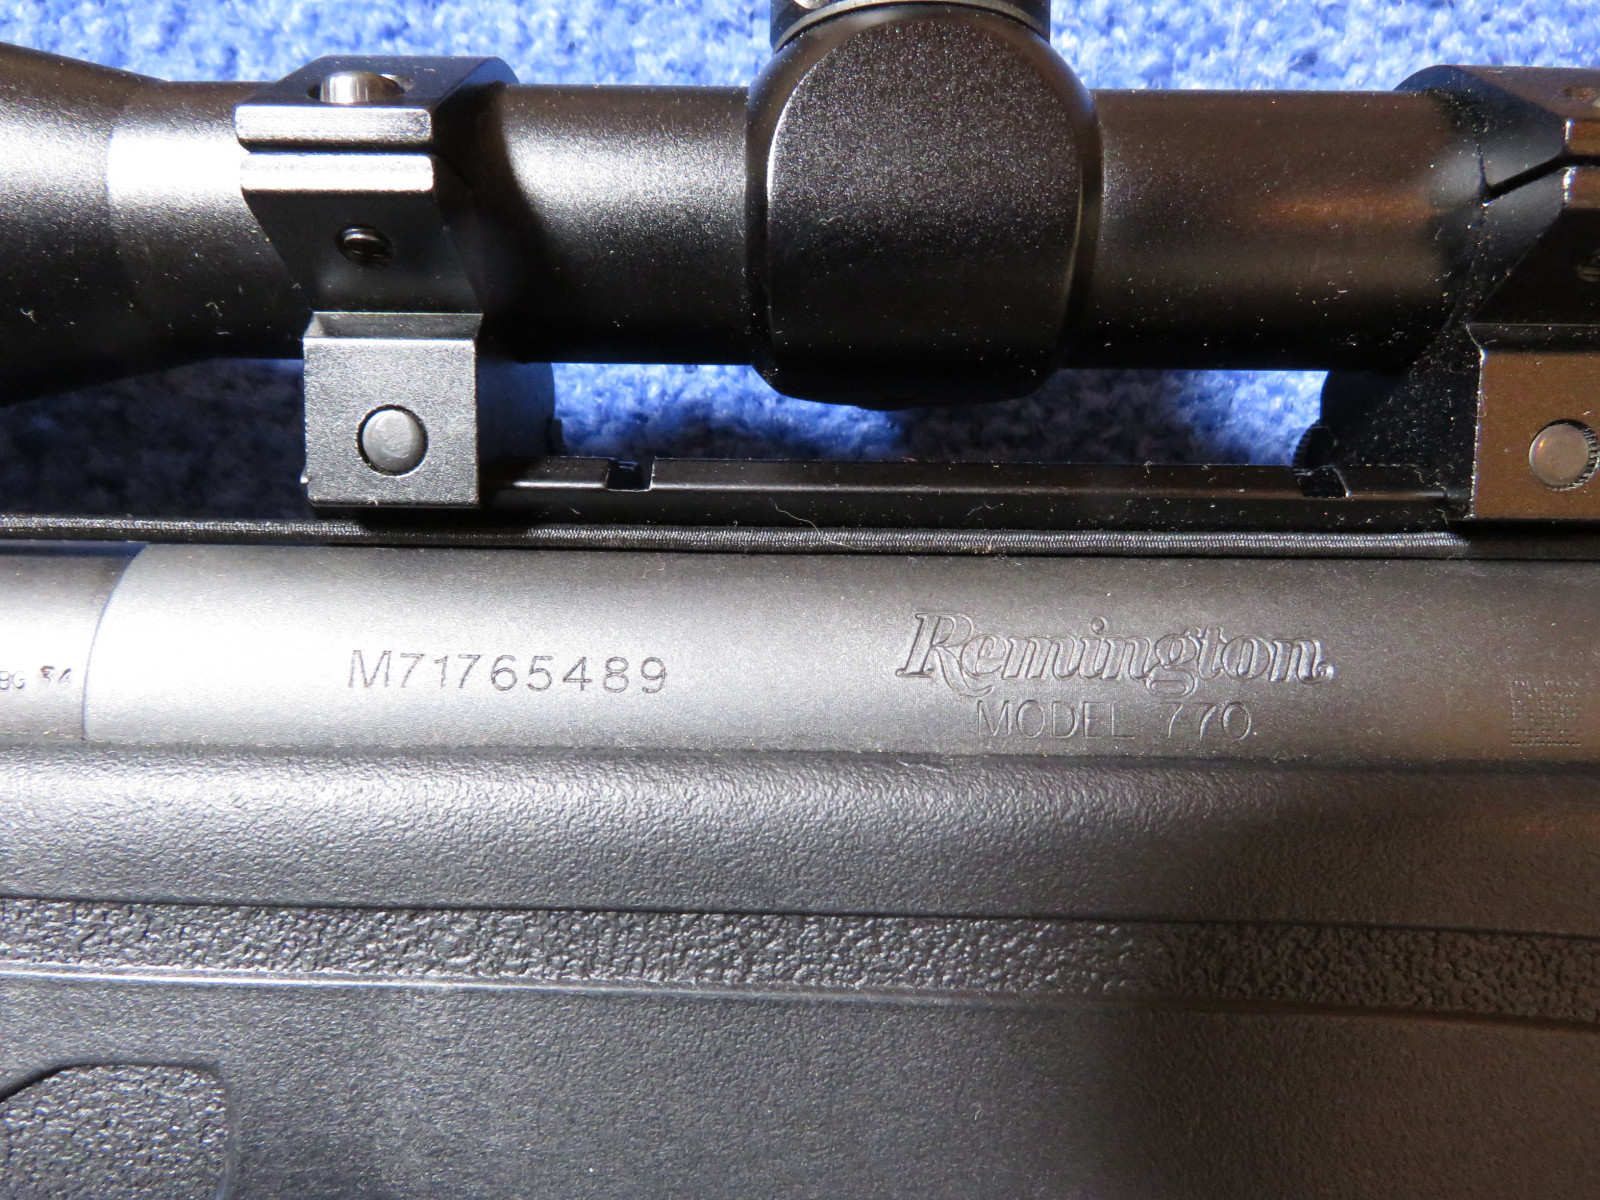 Remington Model 770 Bolt Action Rifle M71765489 - Image 3